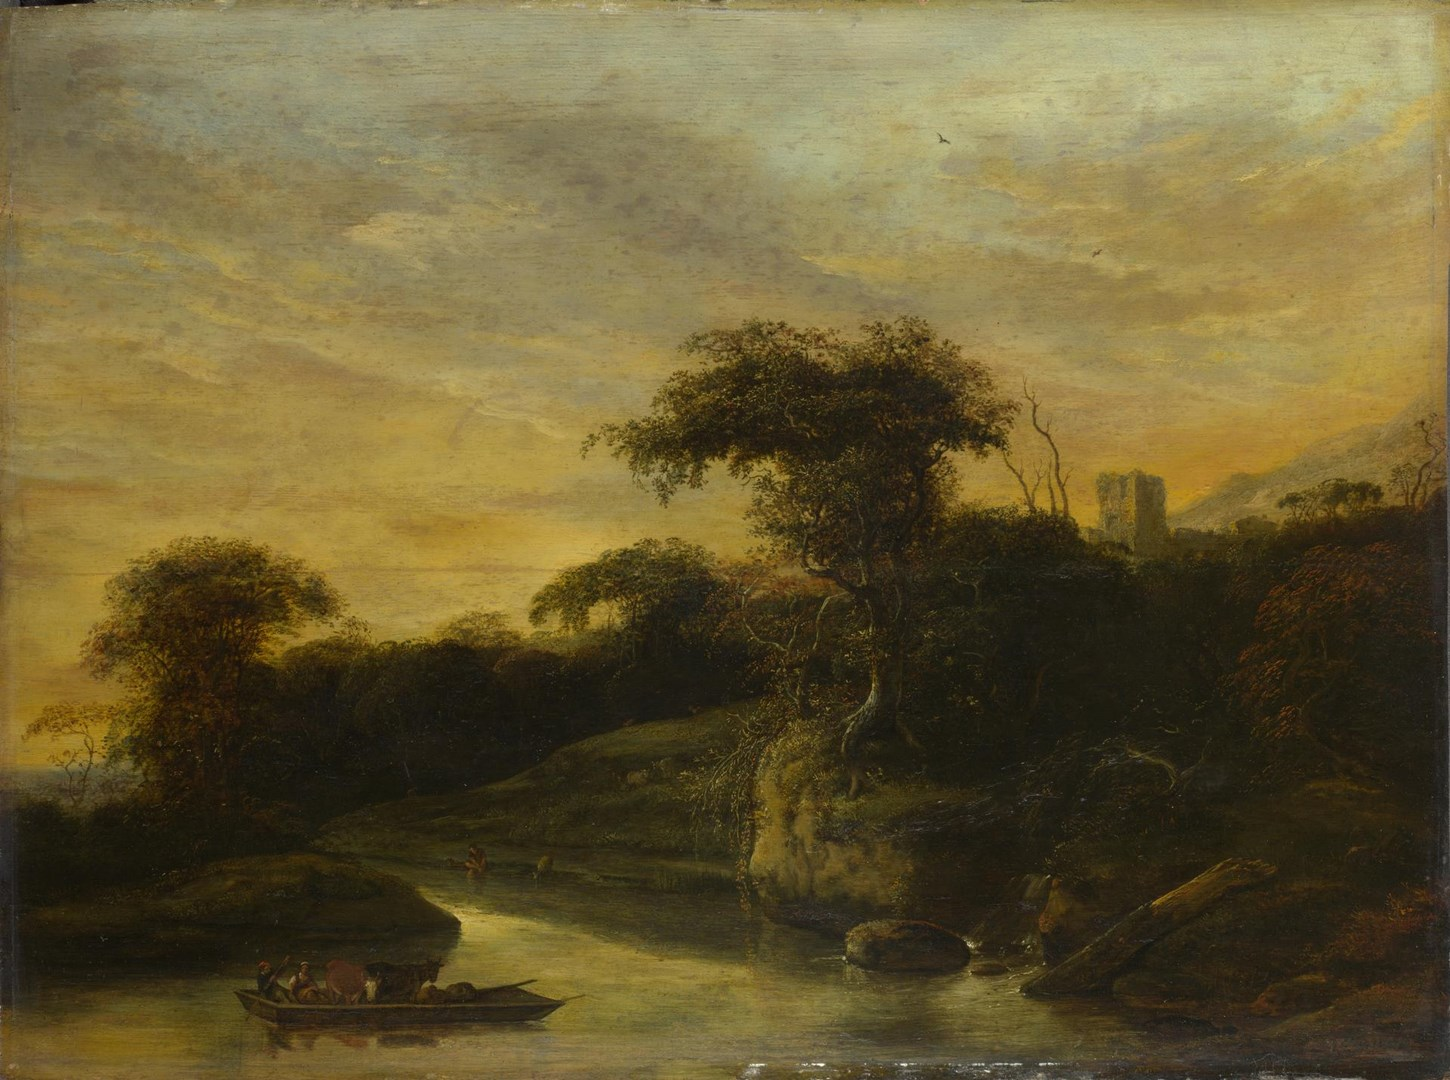 A Landscape with a River at the Foot of a Hill by Jacob de Wet the Elder